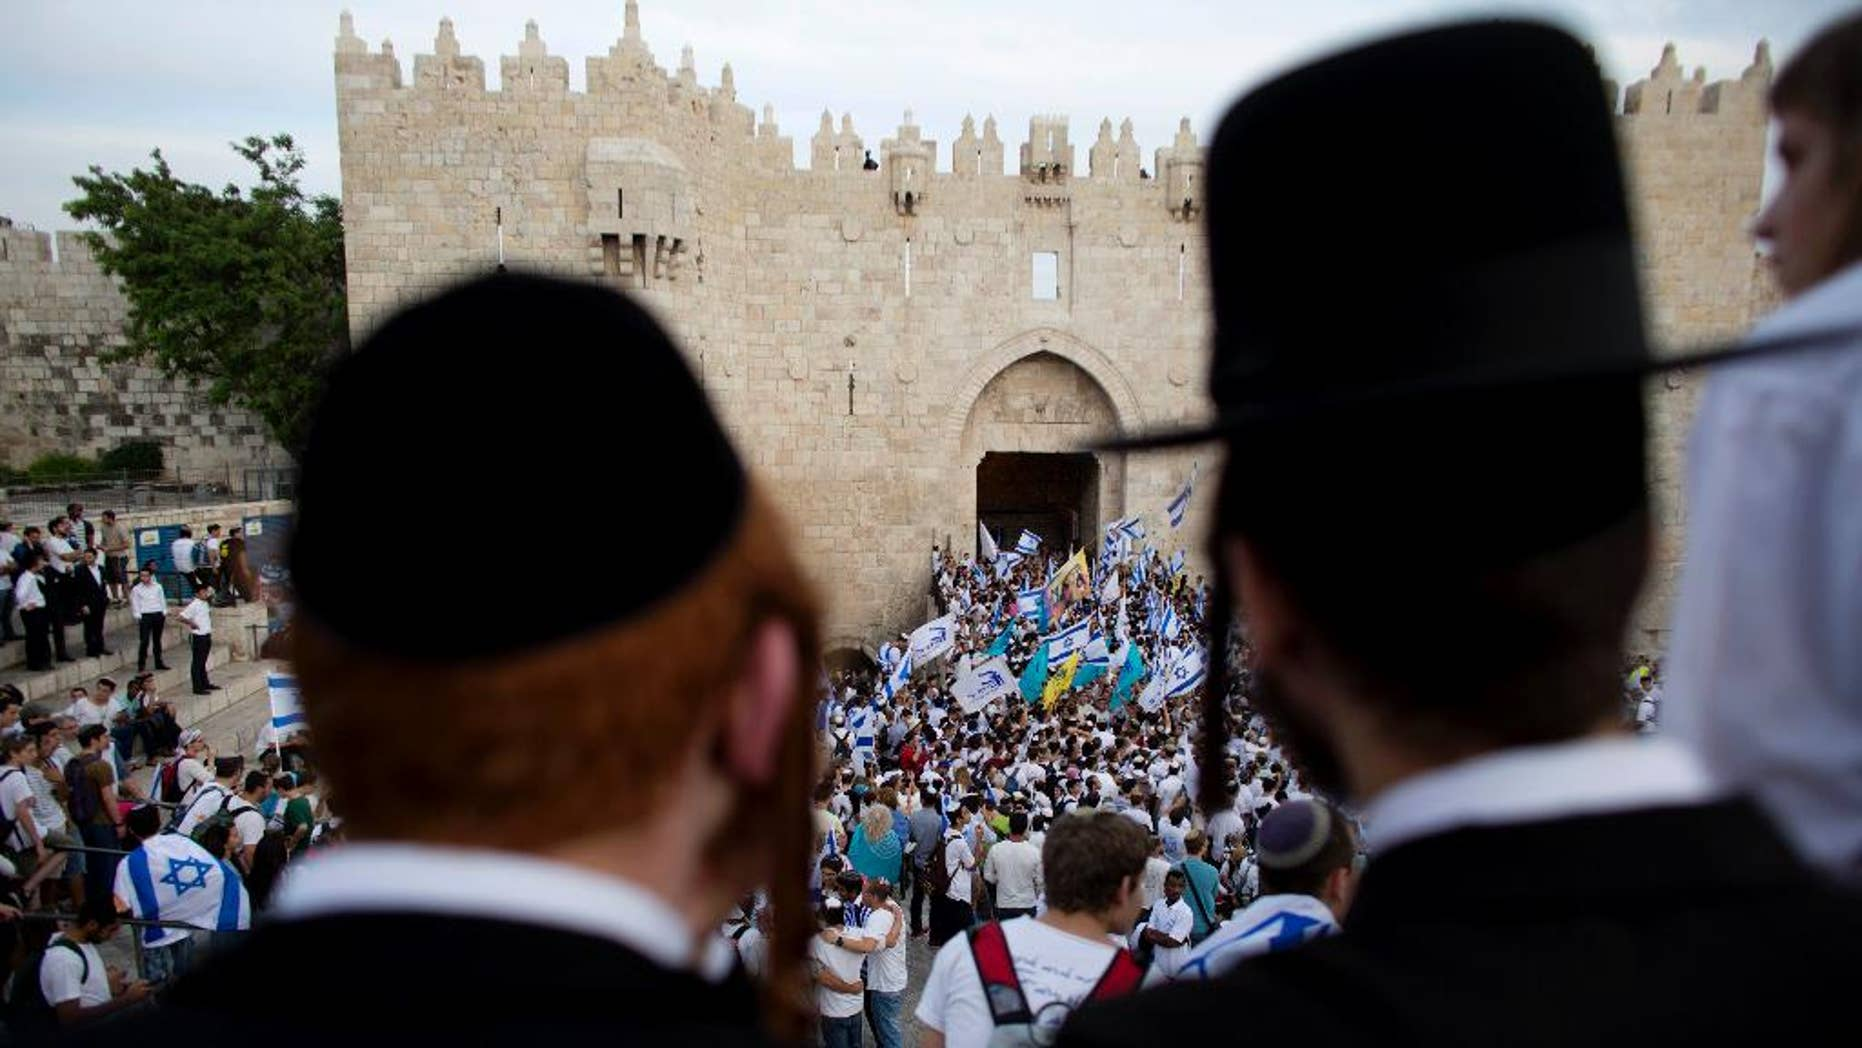 FILE - In this May 28, 2014, file photo, Ultra-Orthodox Jews watch people wave Israeli flags outside the Old City's Damascus Gate during Jerusalem Day celebrations in Jerusalem. A recent demonstration by ultra-Orthodox Jews against a new cinema opening its doors on the Sabbath was meant to be a show of strength in a long-running battle over the role of strict Jewish law in the cultural life of Jerusalem. But in many ways, it was also a sign of desperation after a series of gains by the city's secular community in recent years.  (AP Photo/Dusan Vranic, File)